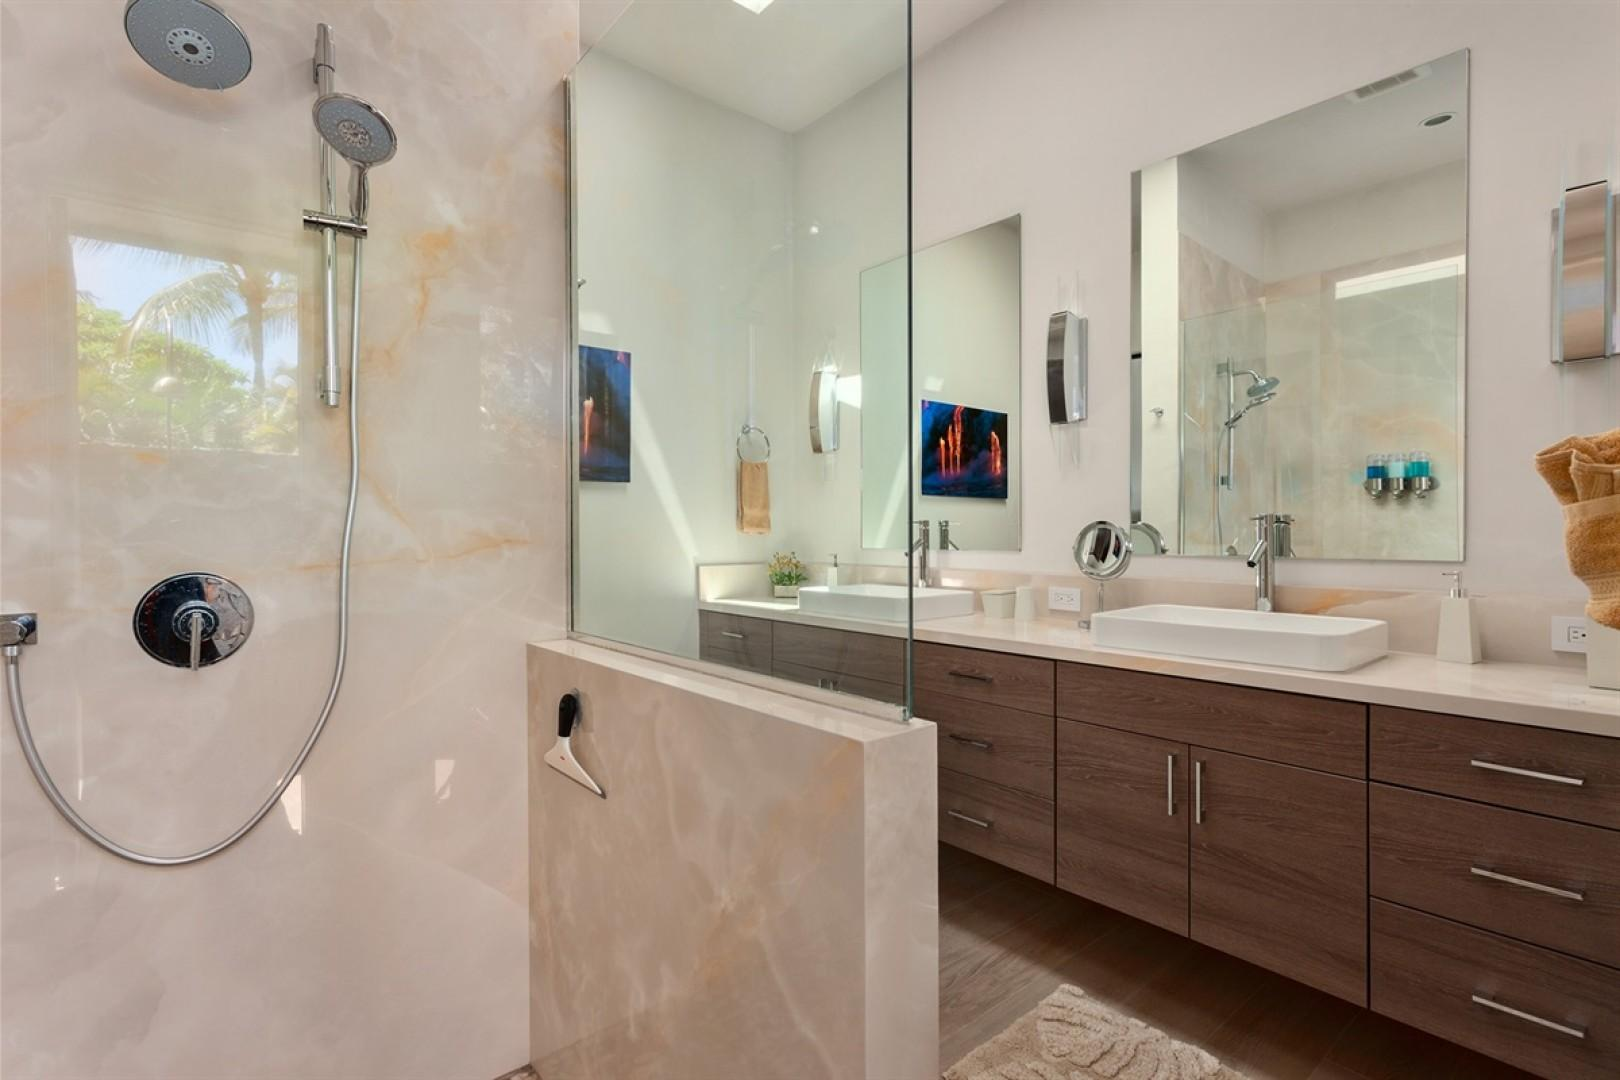 Master Suite 2 bath with dual vanity, walk-in shower and outdoor shower.